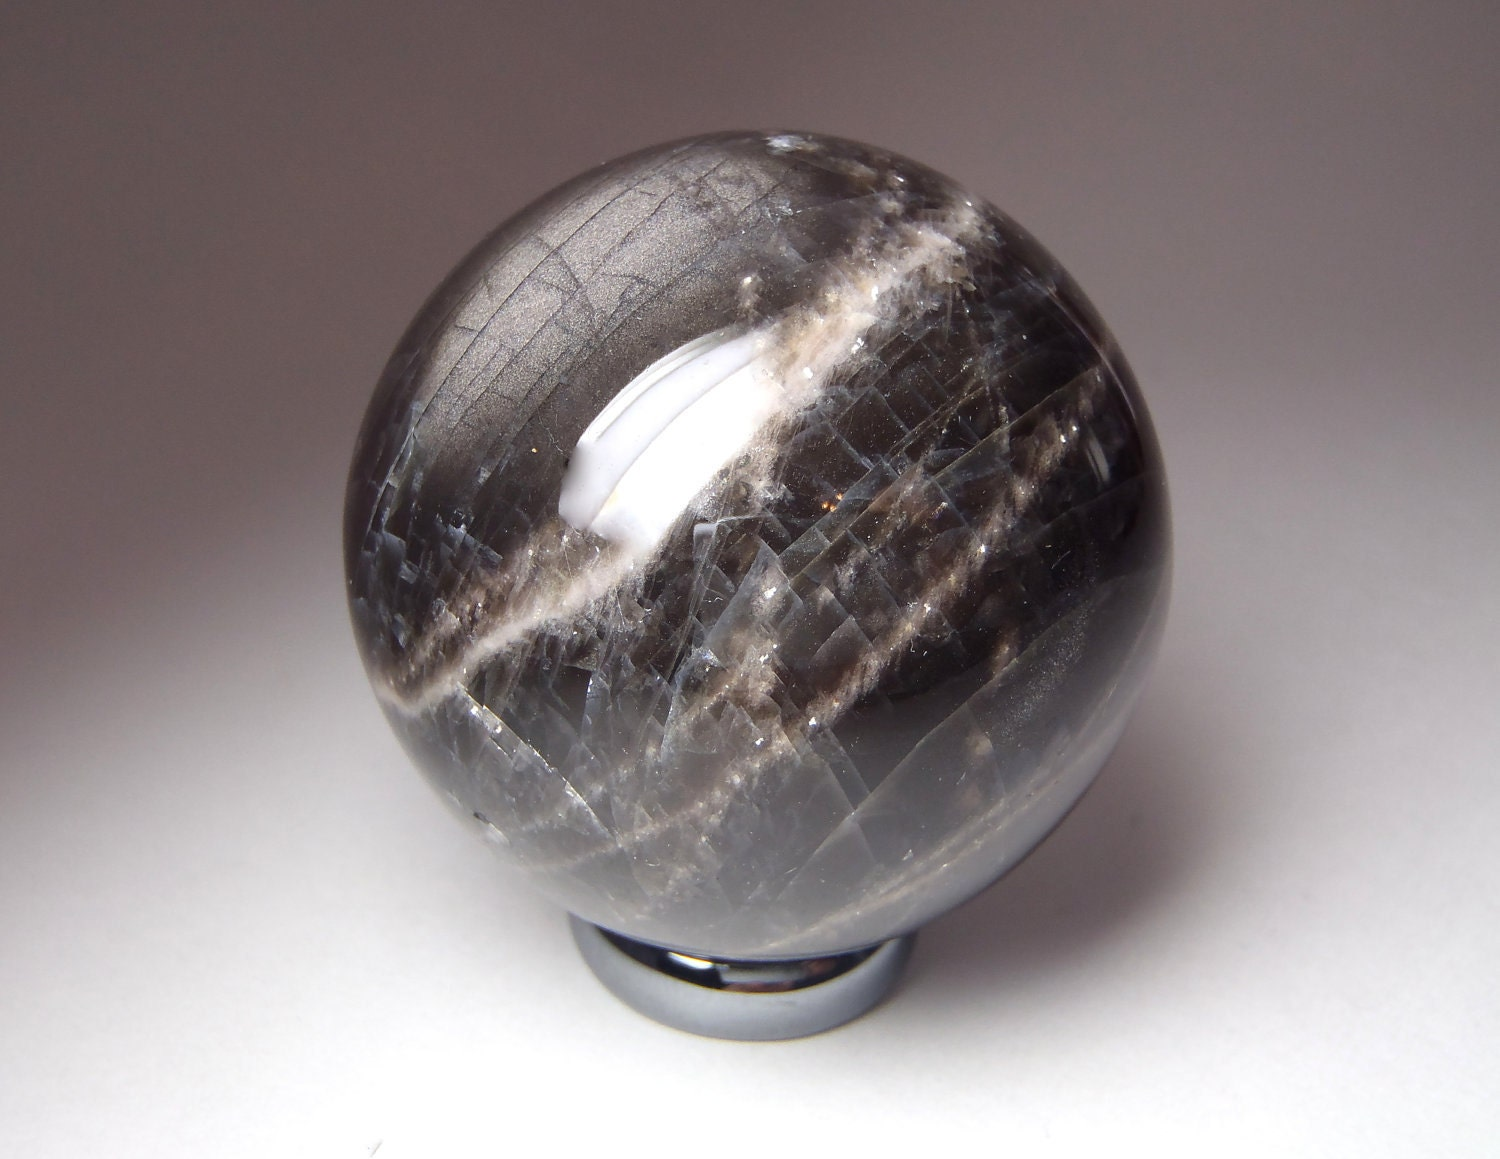 Dark Moon Magic Black Moonstone Sphere / Scrying Ball for